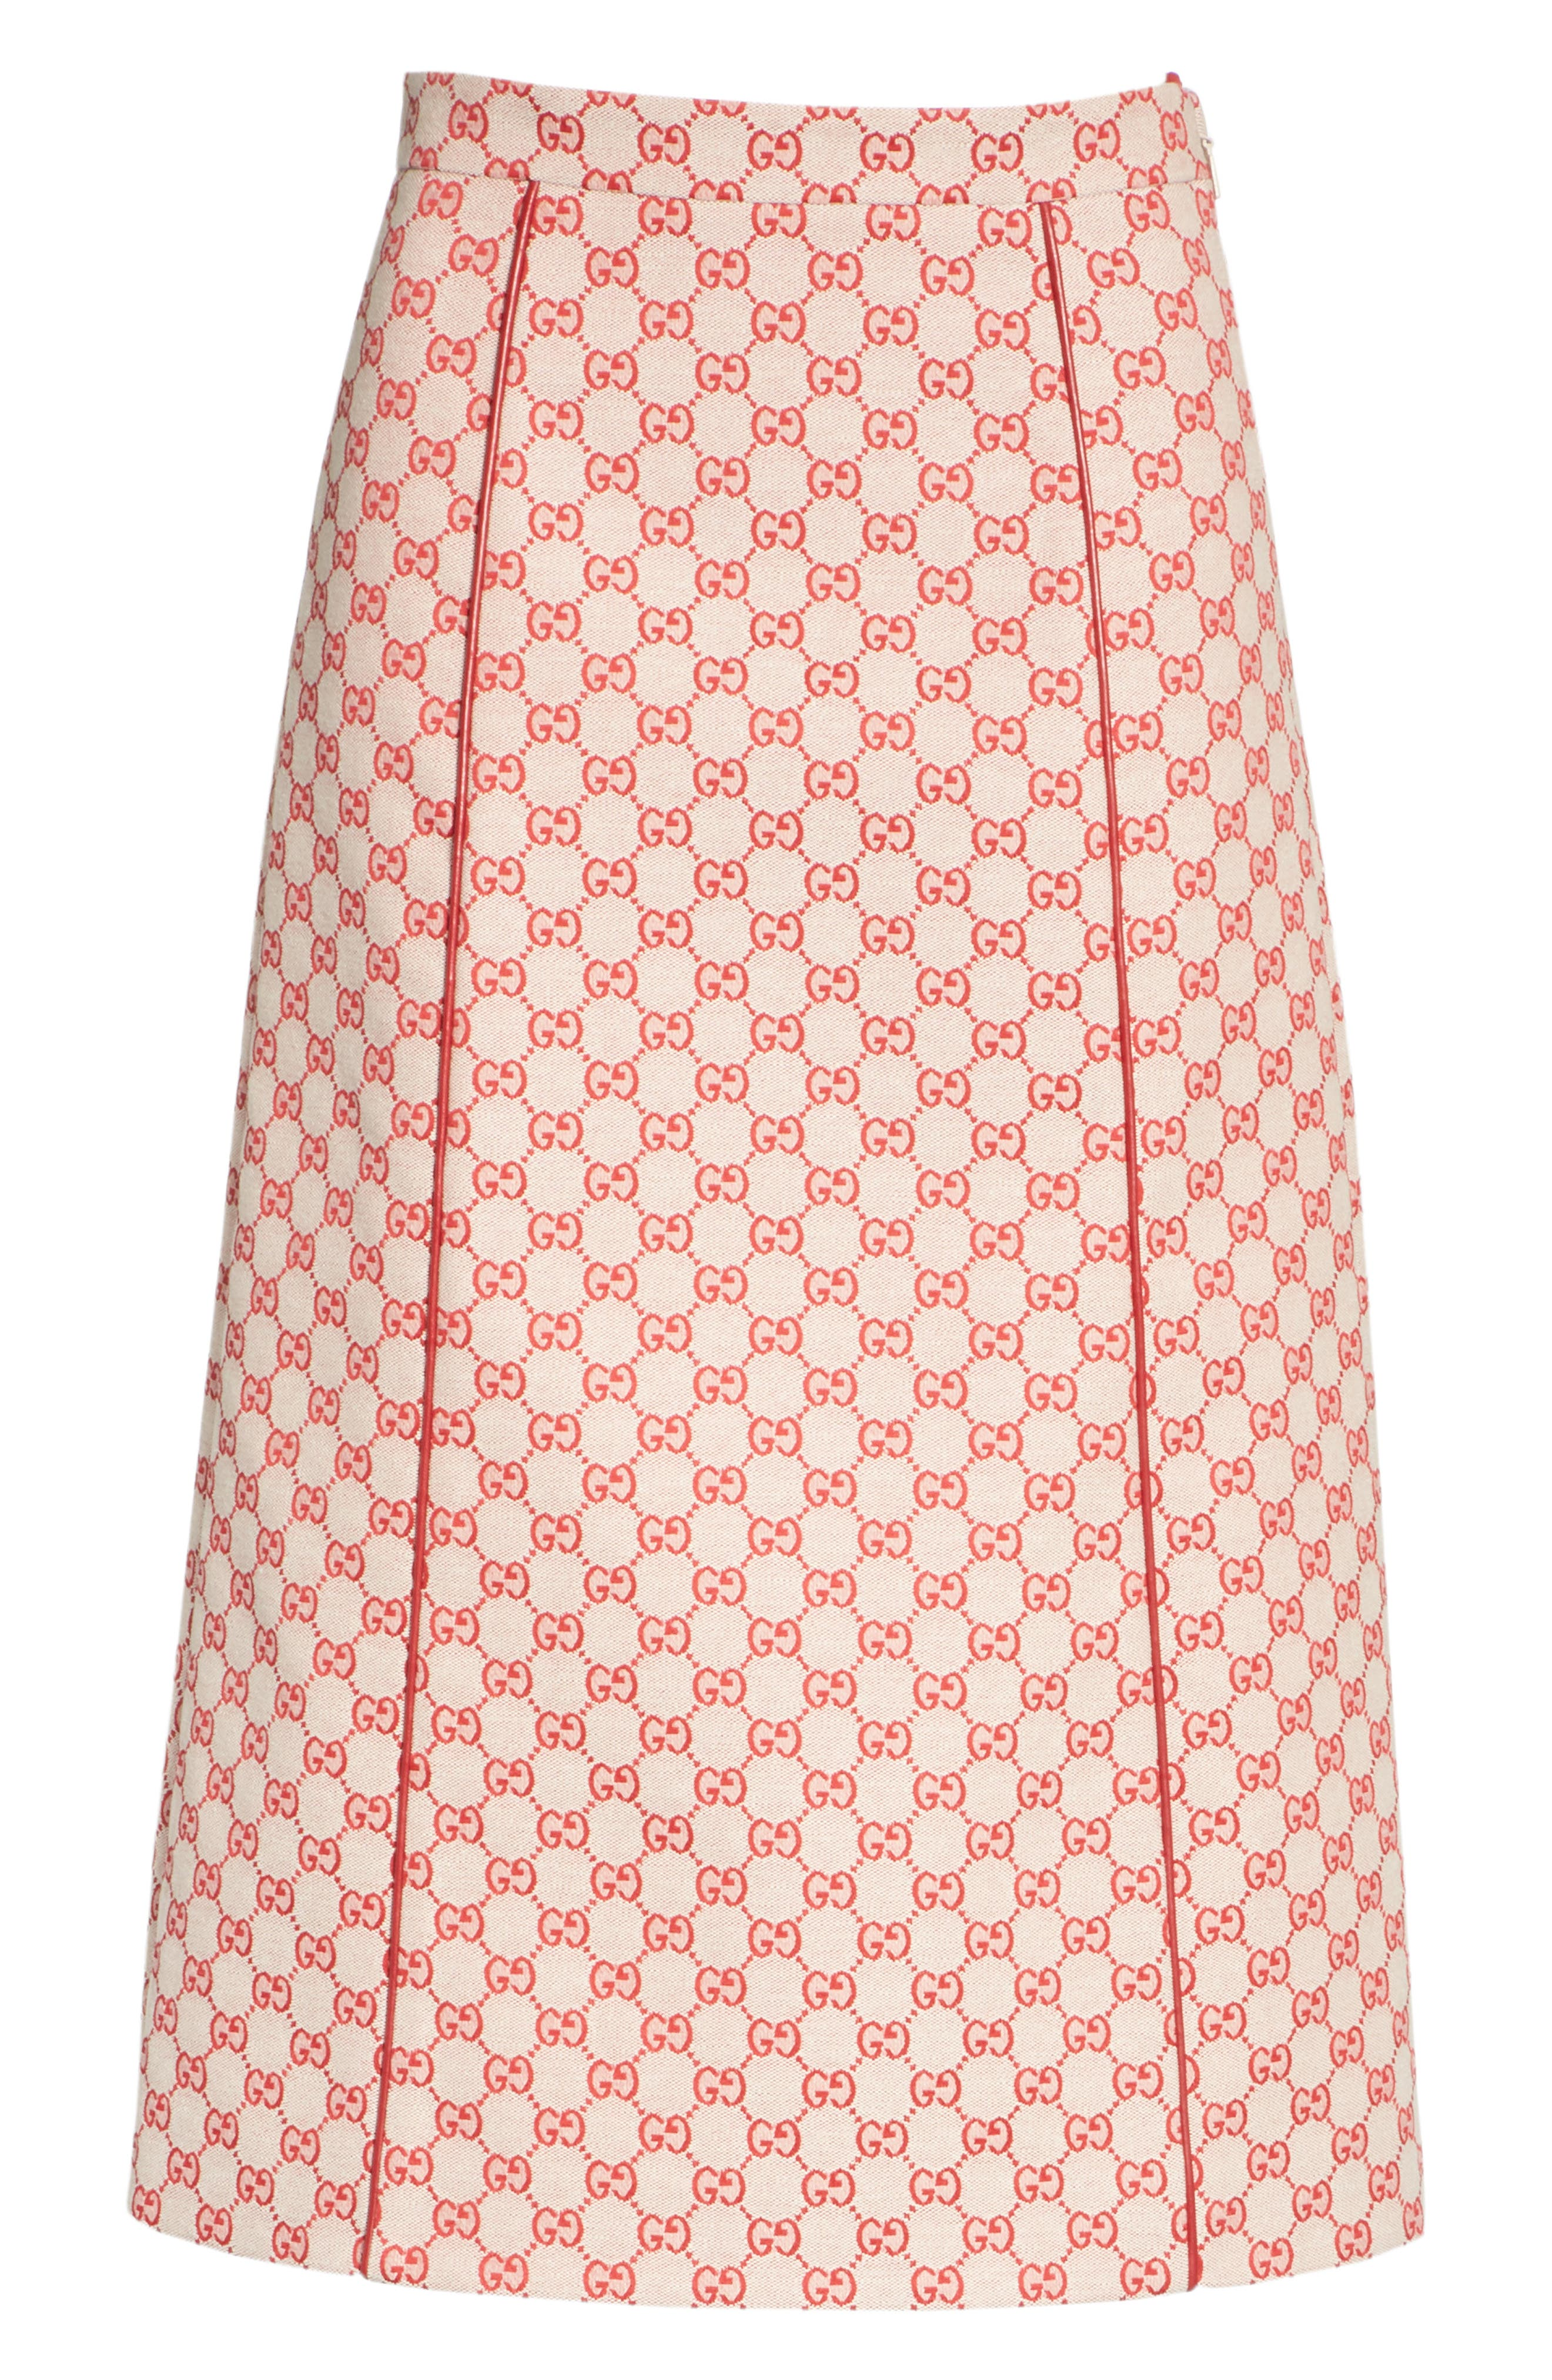 GG Print Canvas A-Line Skirt,                             Alternate thumbnail 6, color,                             Gardenia/ Hibiscus Red